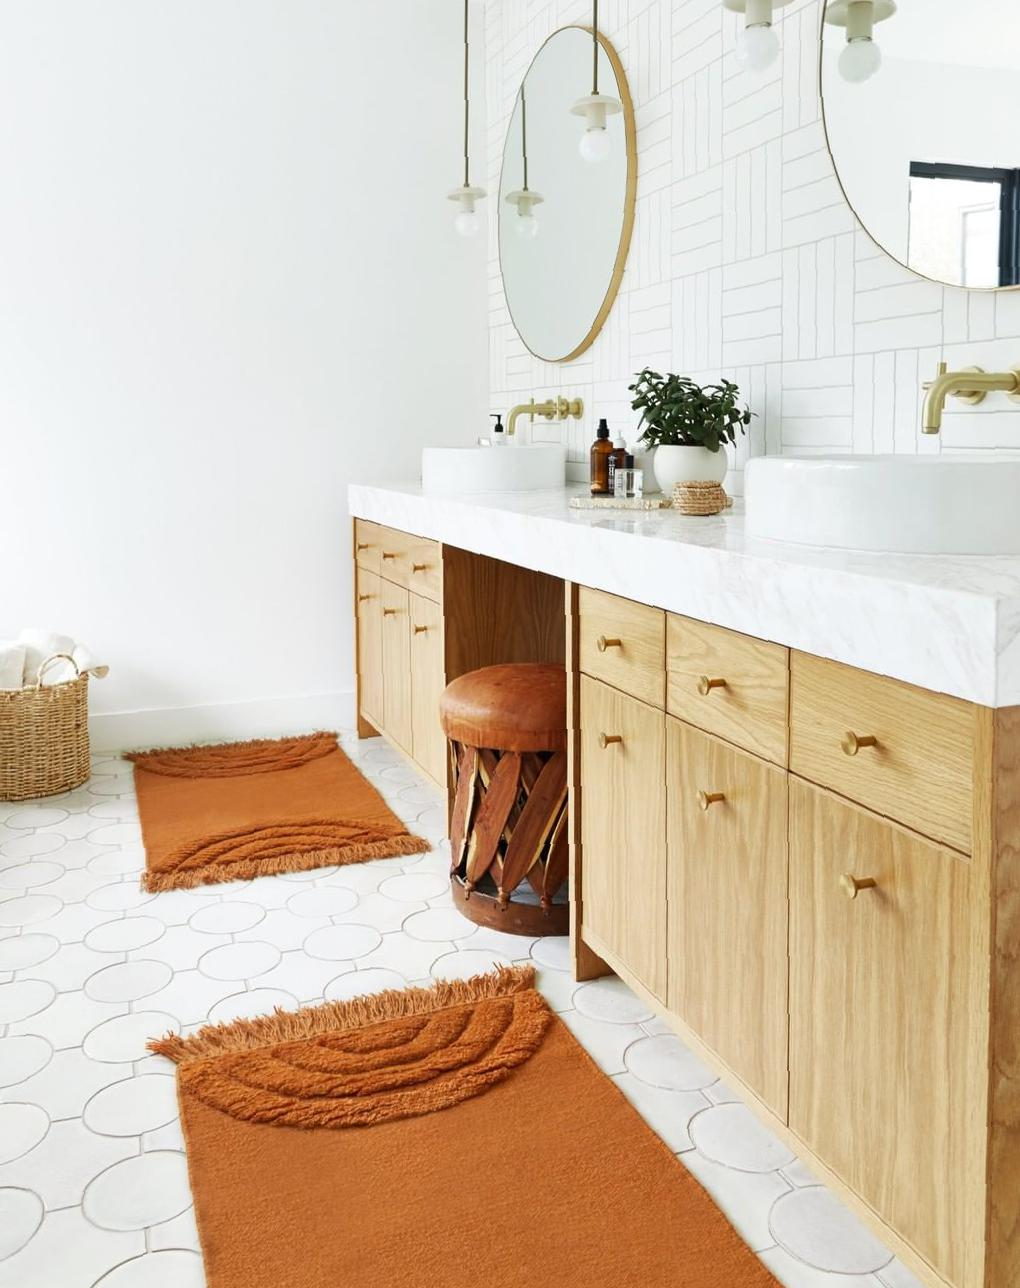 Best Basin Design Images for Your Stylist Home basin, basin ideas, bathroom basin, basin images, basin design